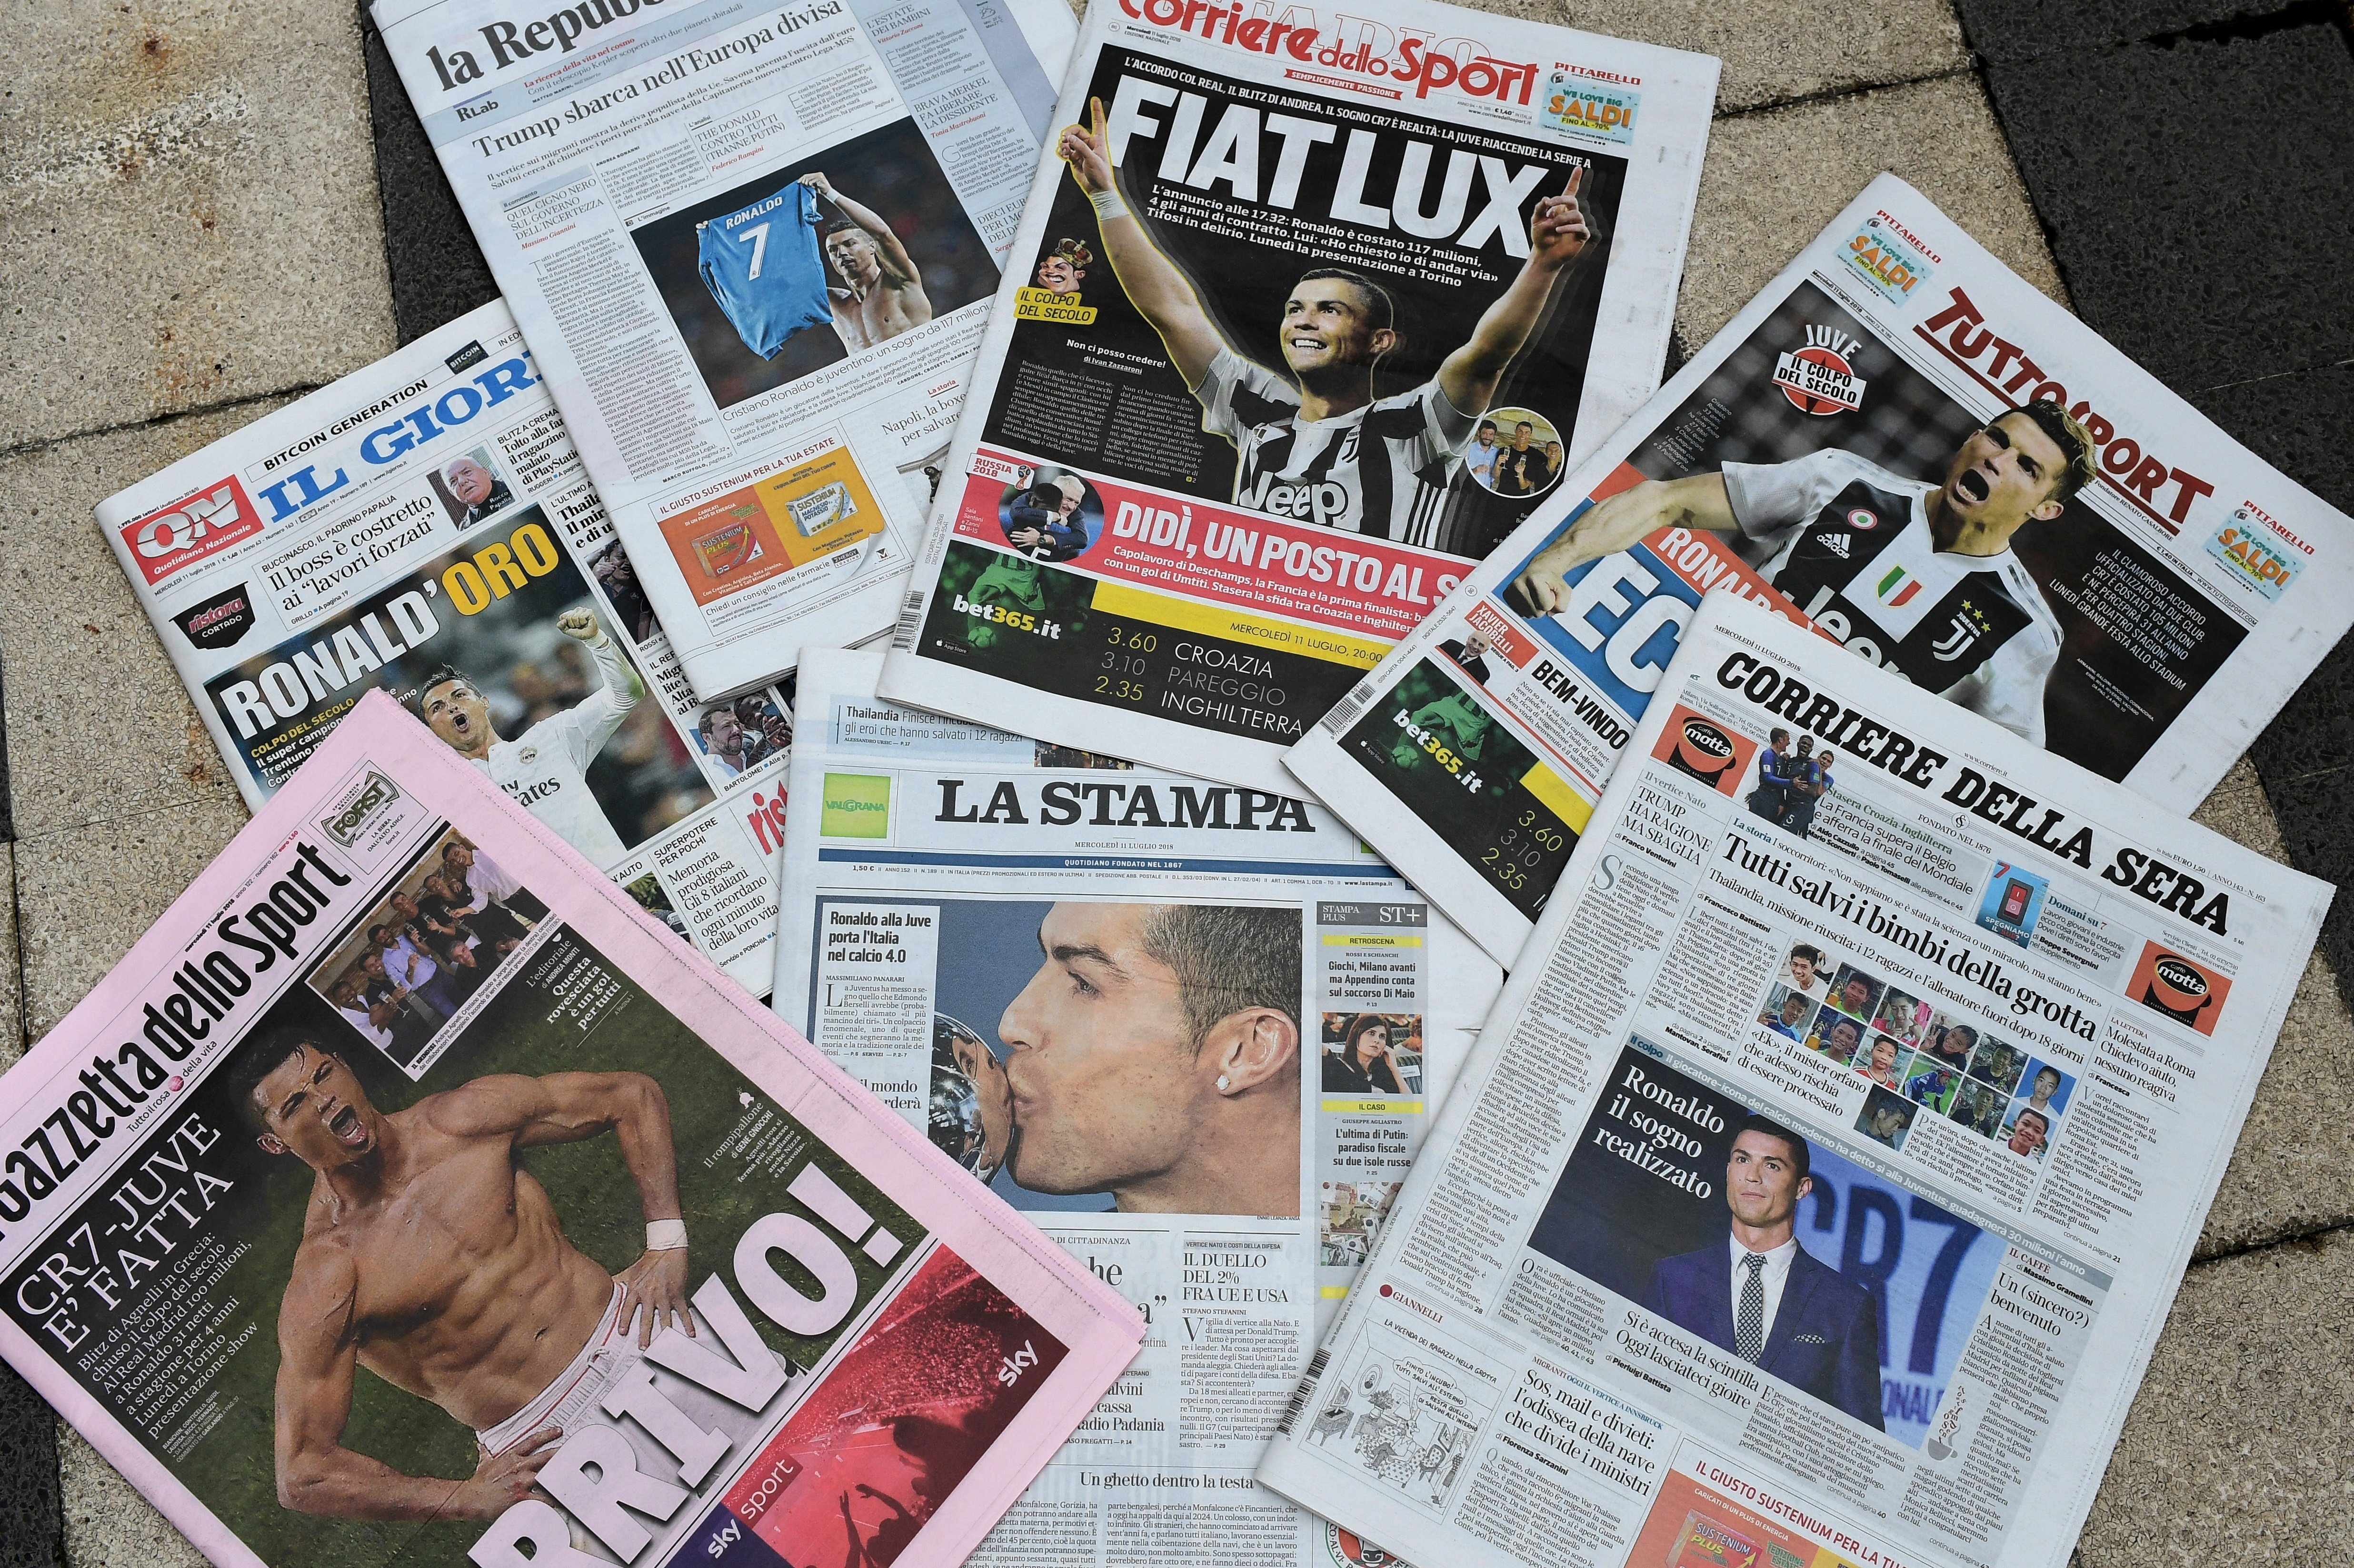 A picture taken on July 11, 2018 in Milan shows the Italian newspapers front pages enlightening the arrival of Portugal's Cristiano Ronaldo at the Italian Serie A football club Juventus Turin